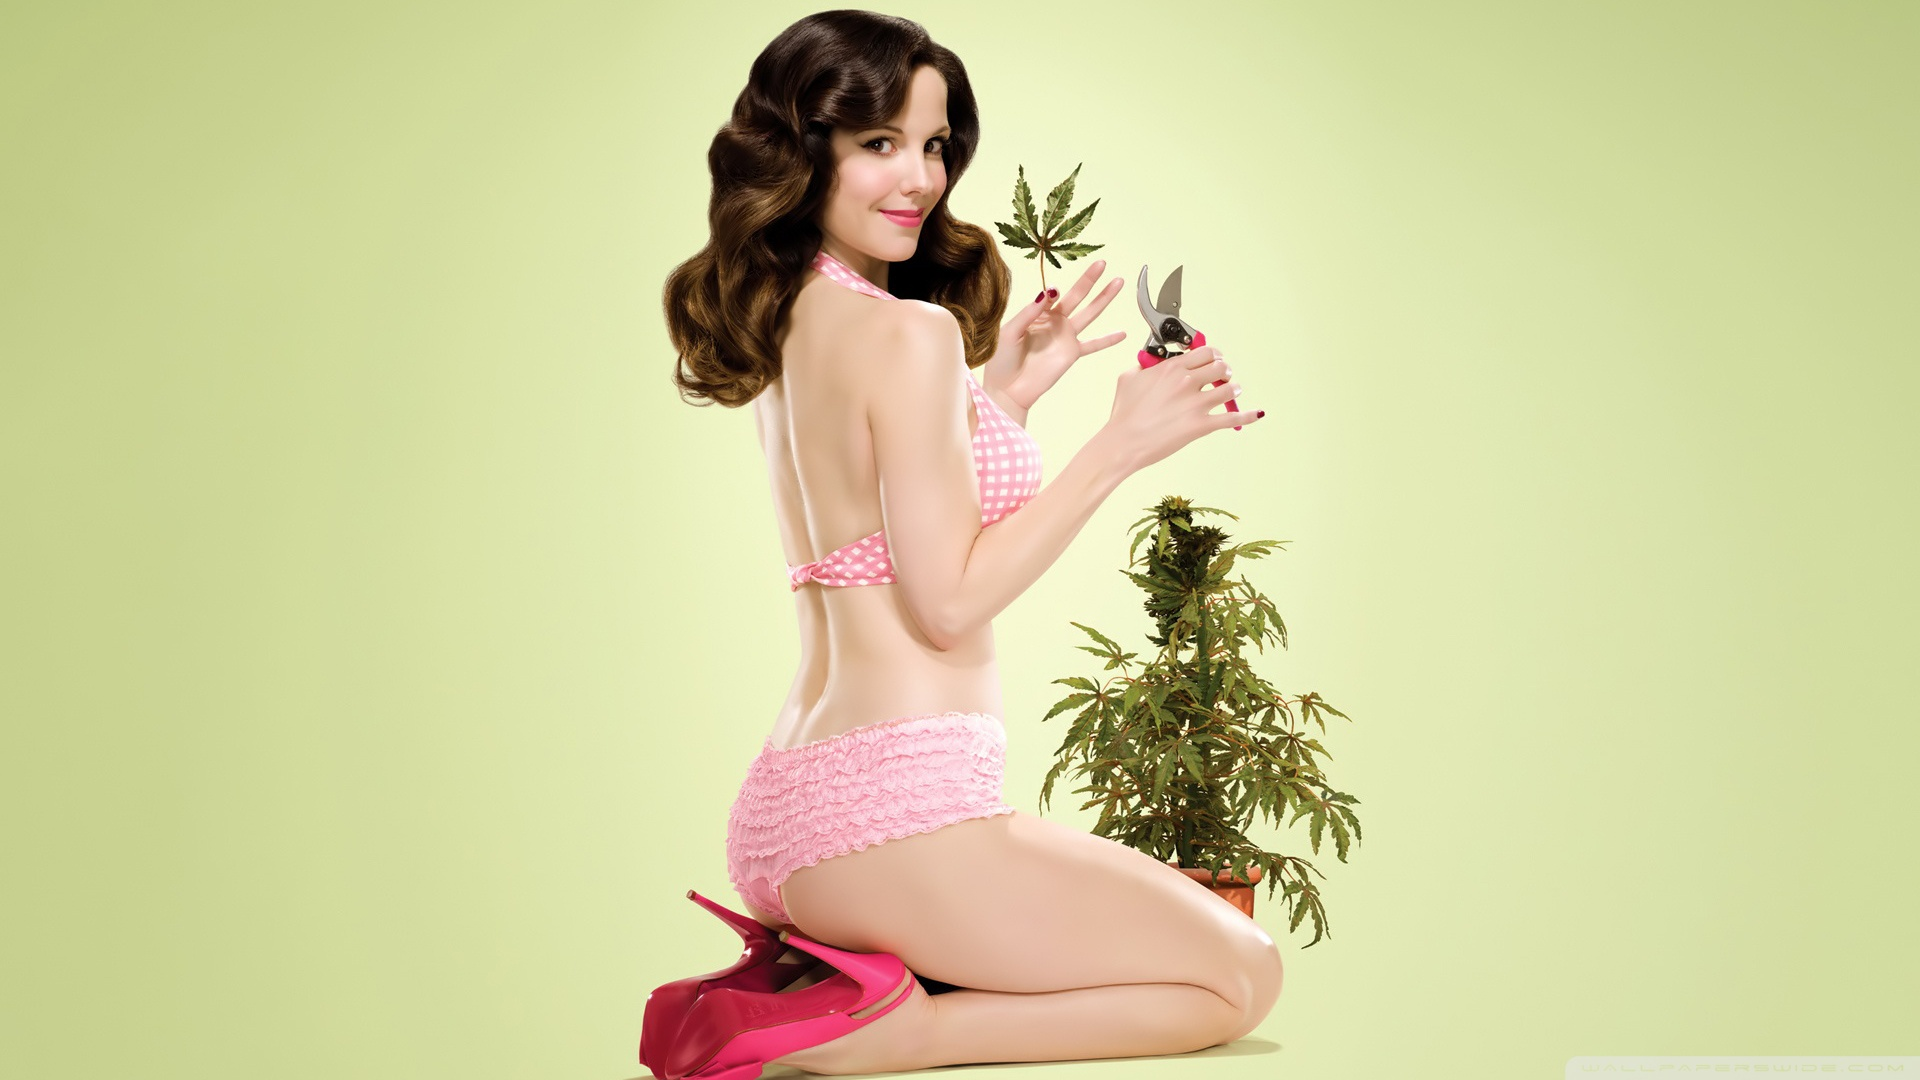 1920x1080 - Mary-Louise Parker Wallpapers 24